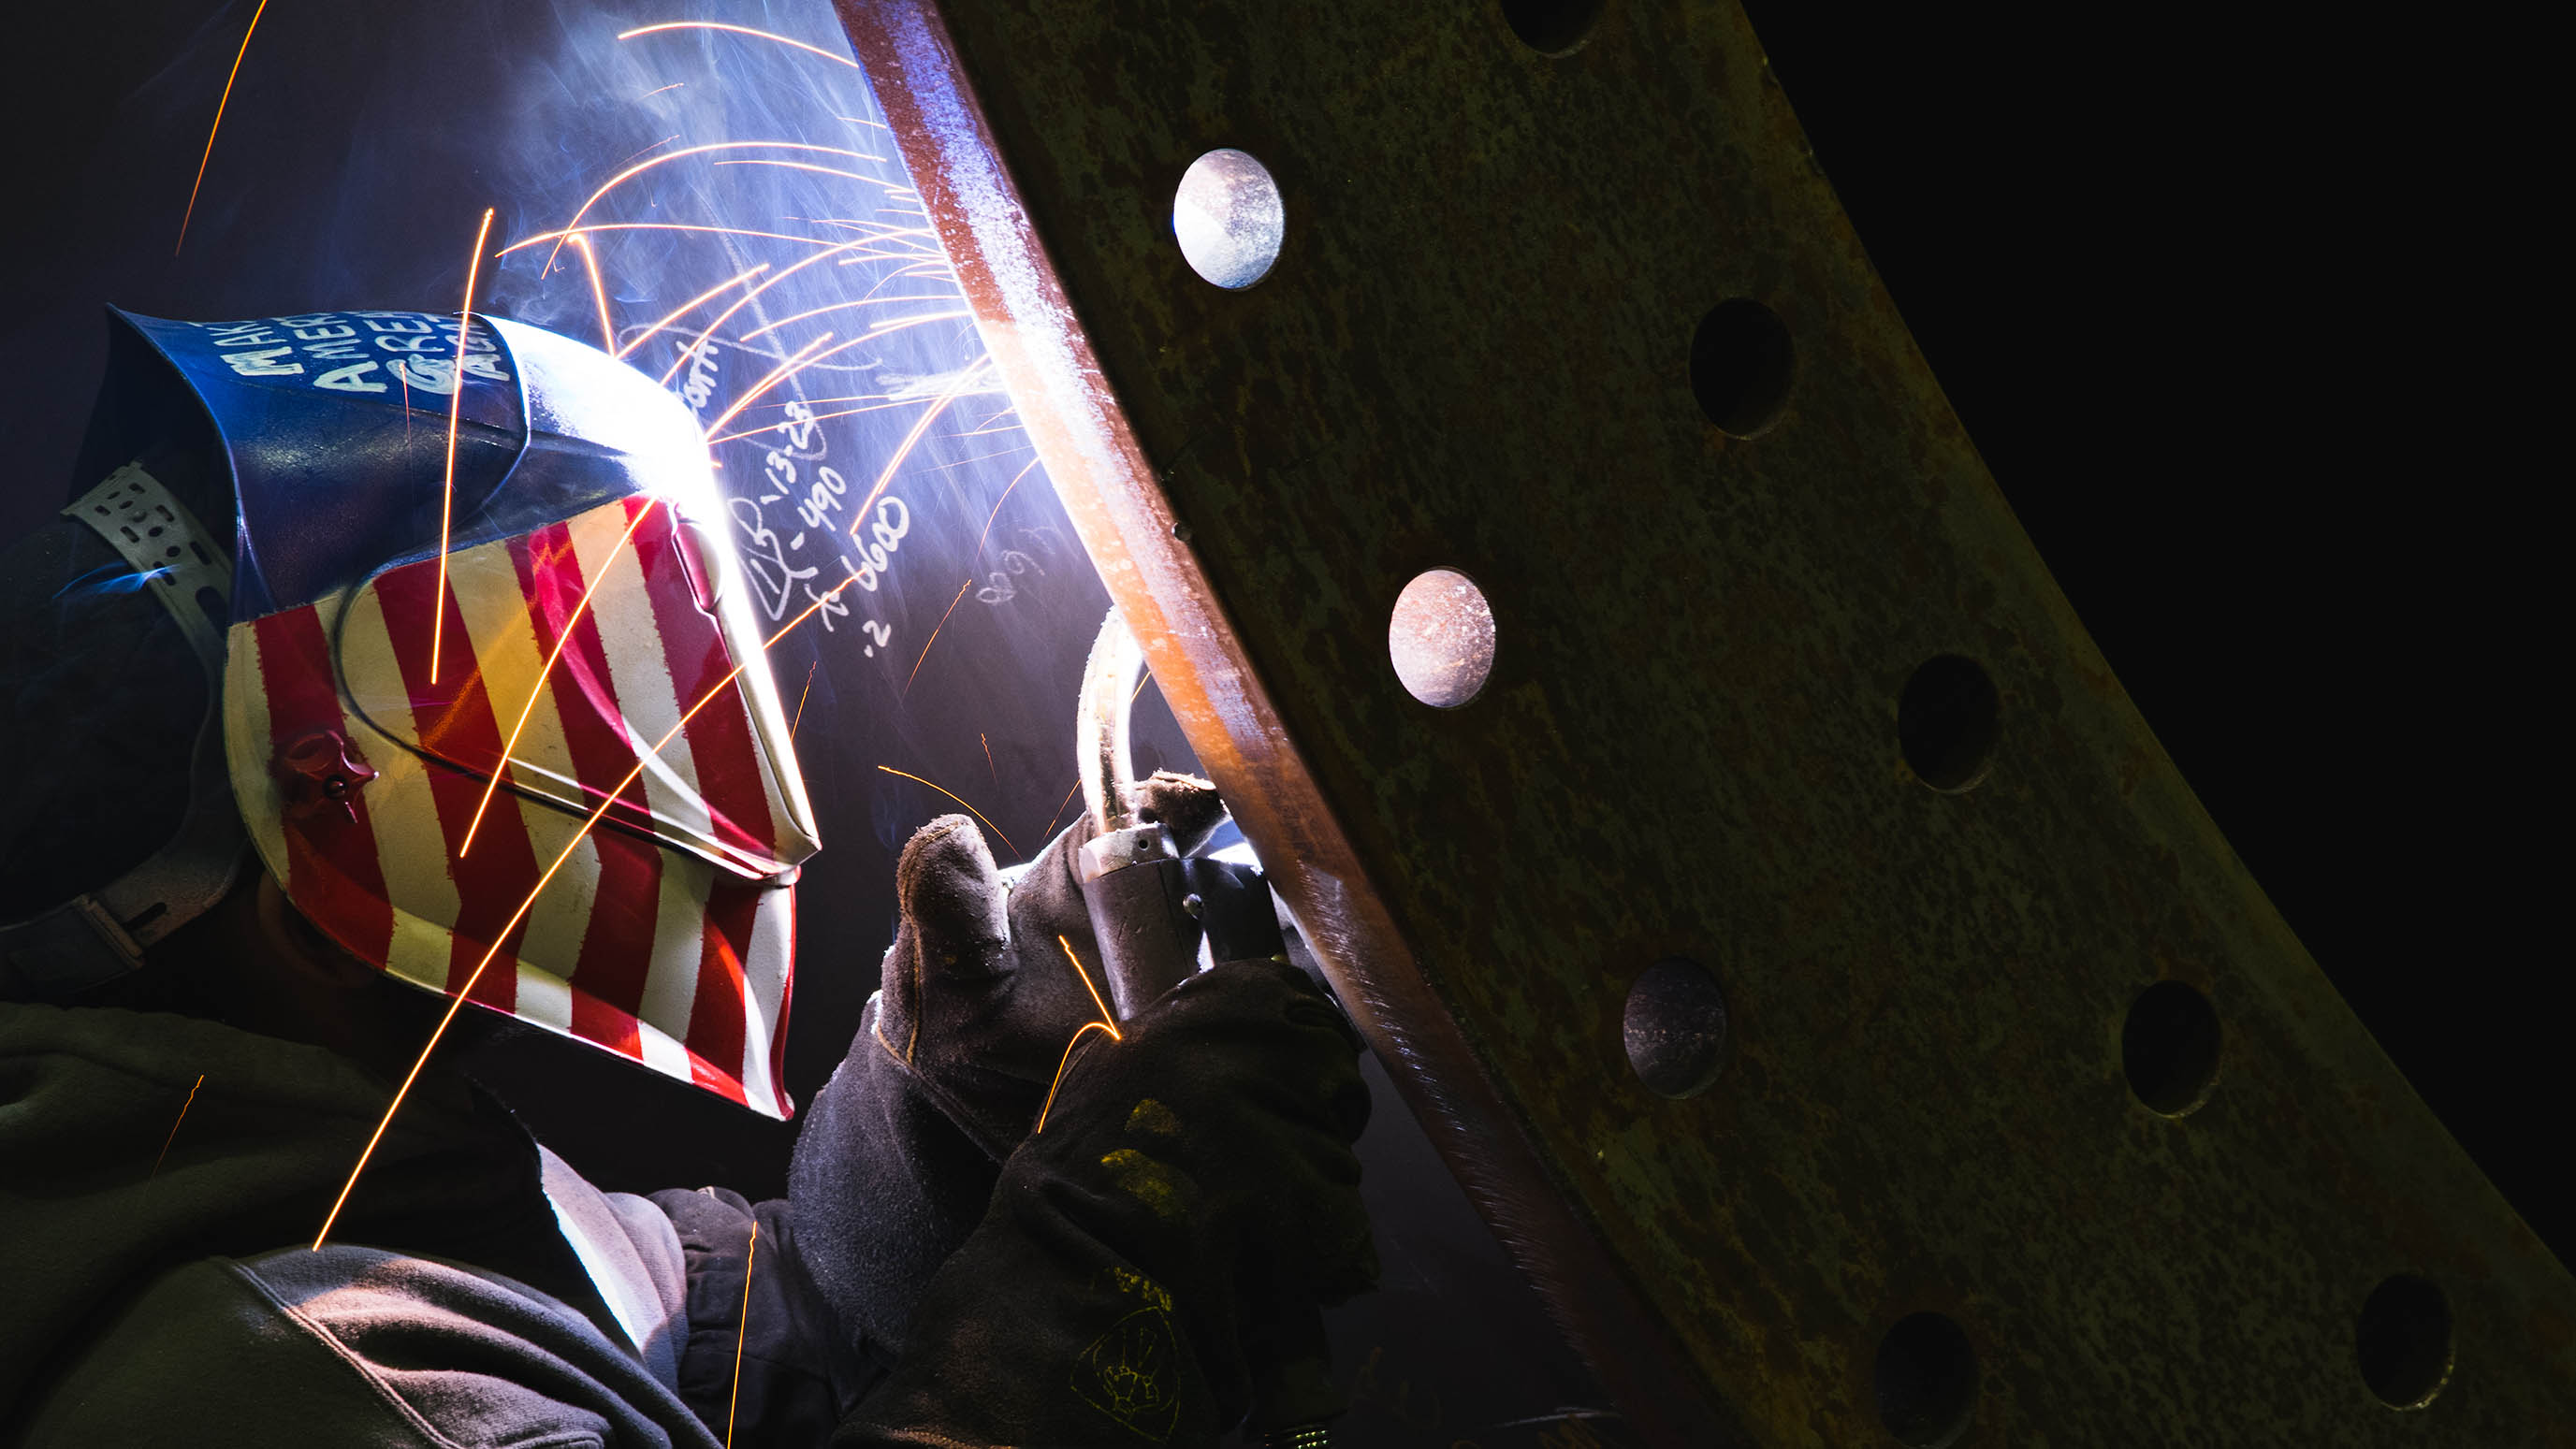 Welder works on turbine tower